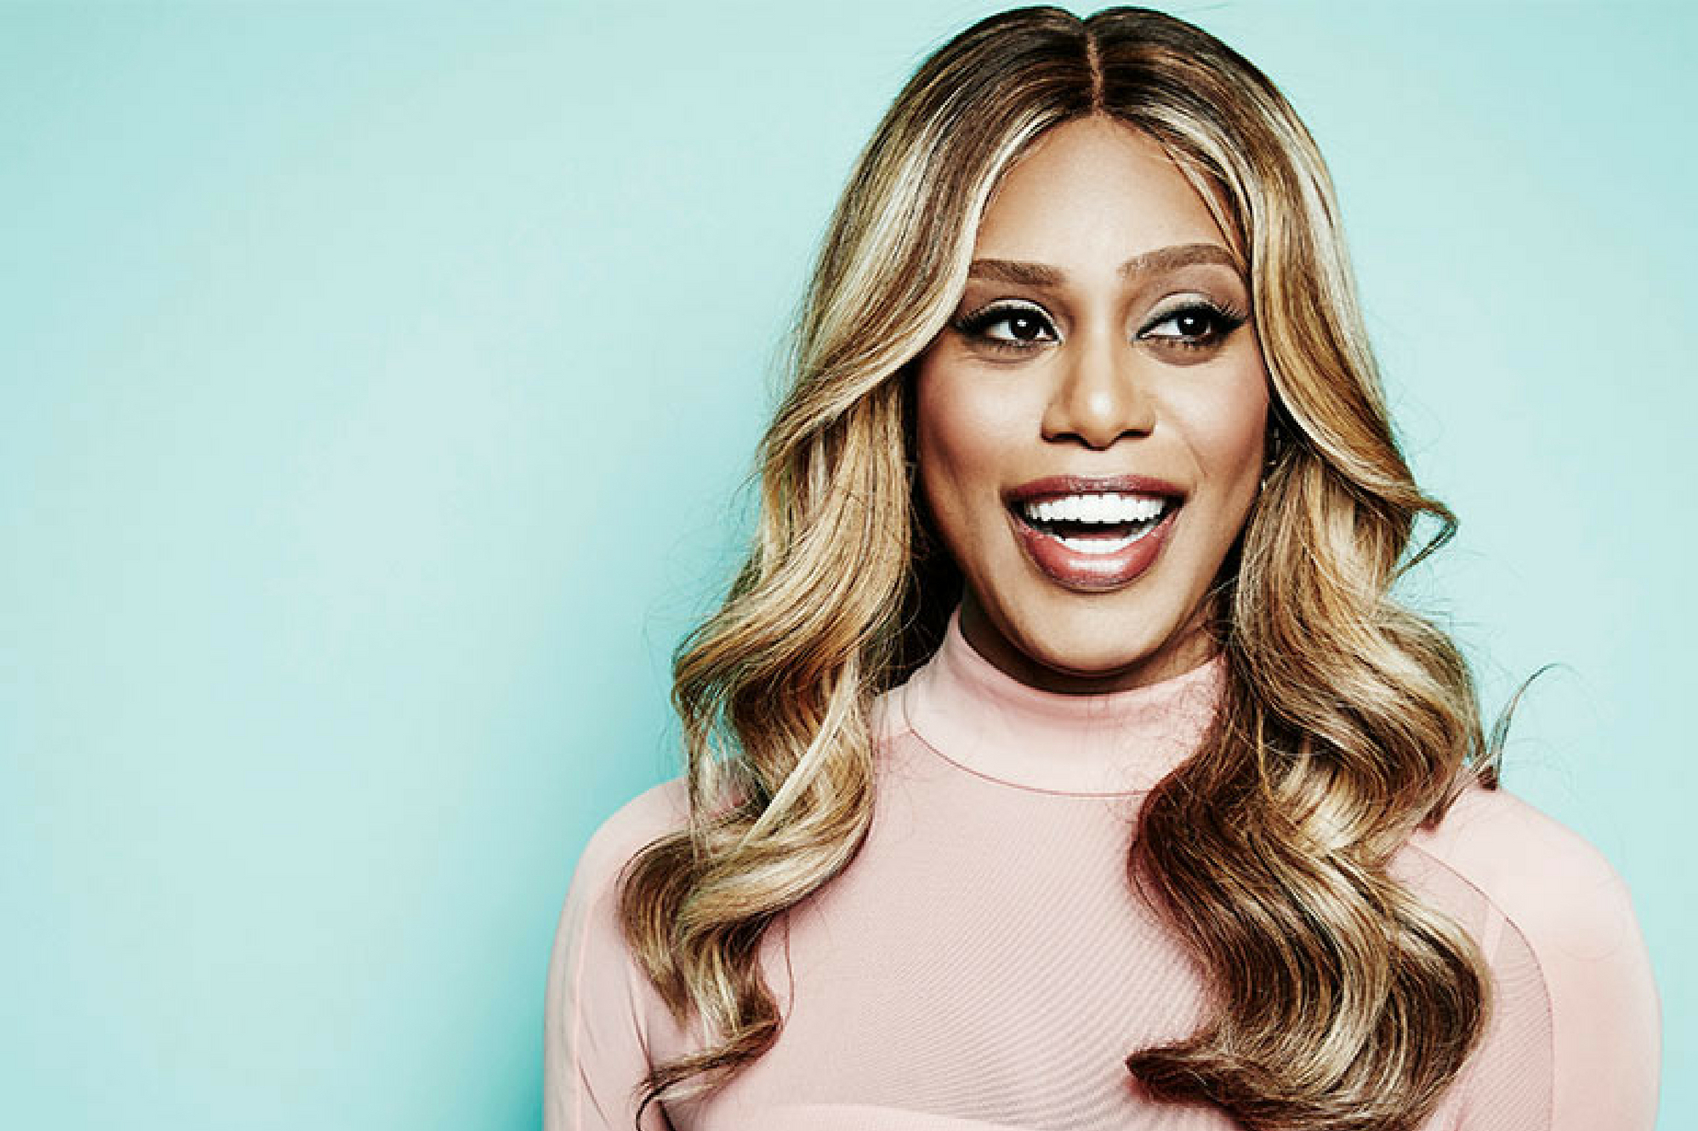 Laverne Cox is an actress best known for her role on the Netflix series Orange is the New Black. In addition to Cox being an openly transgender woman and LGBTQ advocate in real life, she plays a transgender character on the show. The mainstream representation brought about by Cox's various television and magazine appearances has educated many people about transgender women.